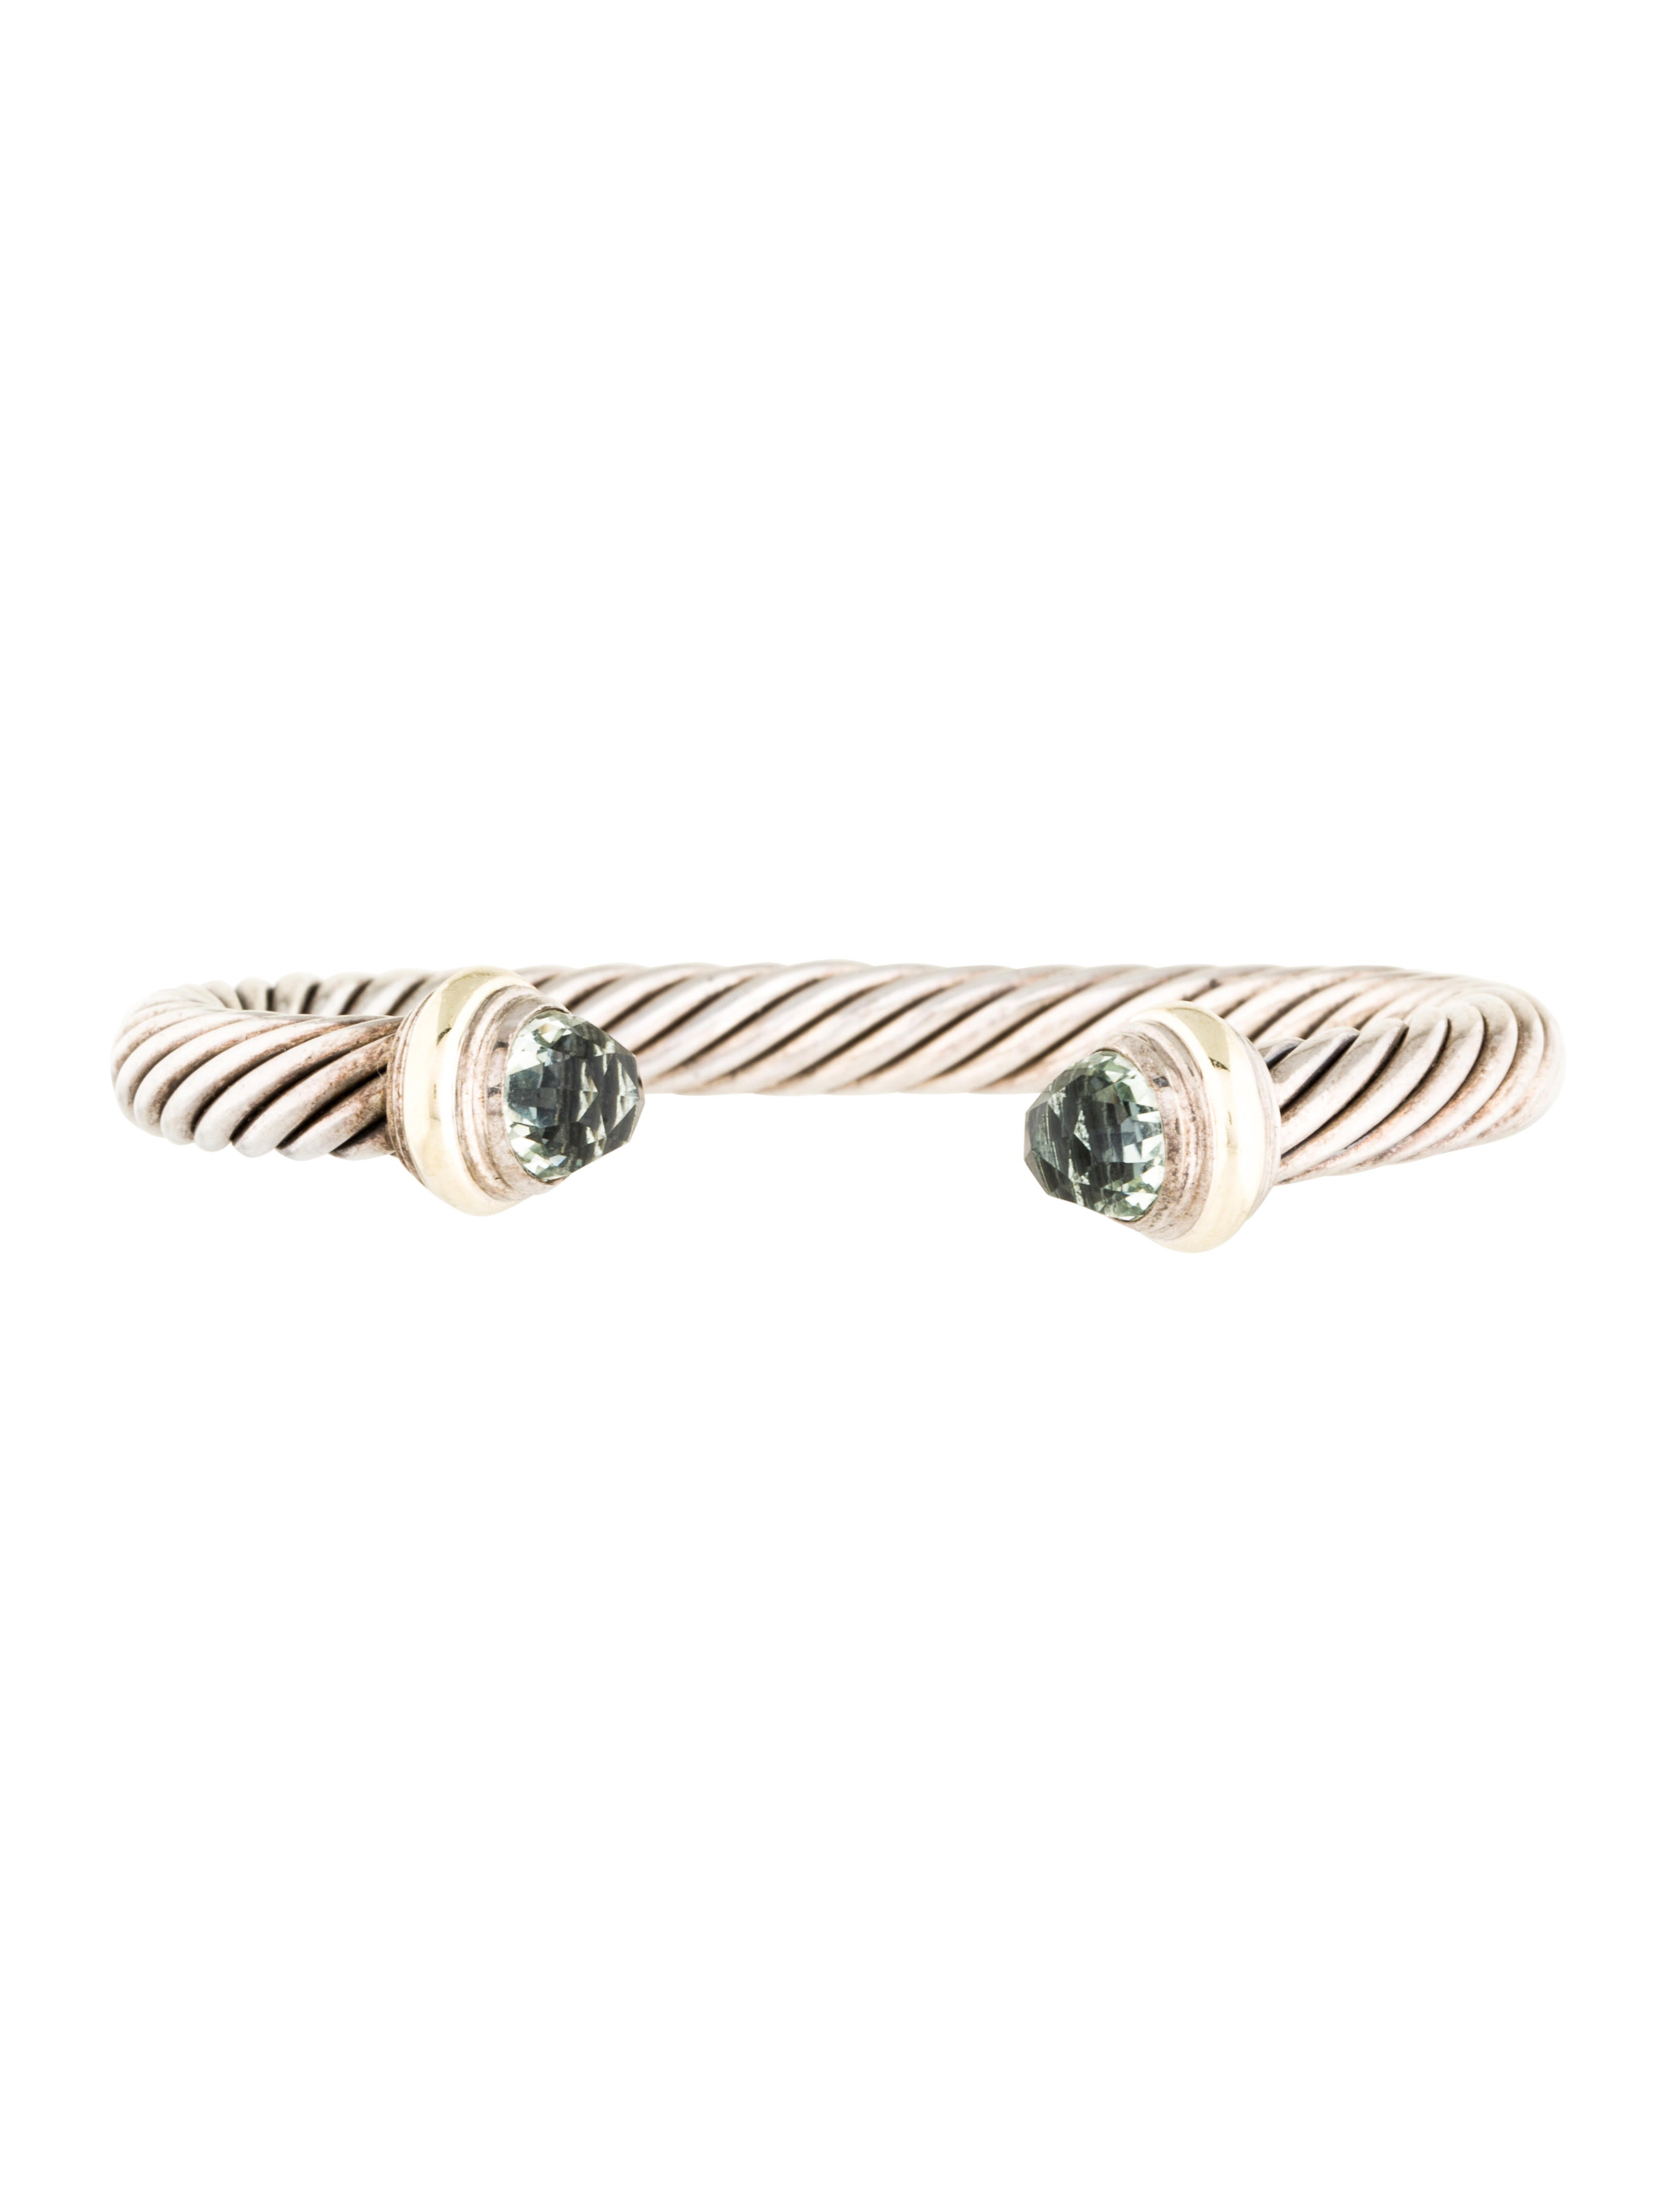 David yurman prasiolite cable classic bracelet bracelets for David yurman inspired bracelet cable